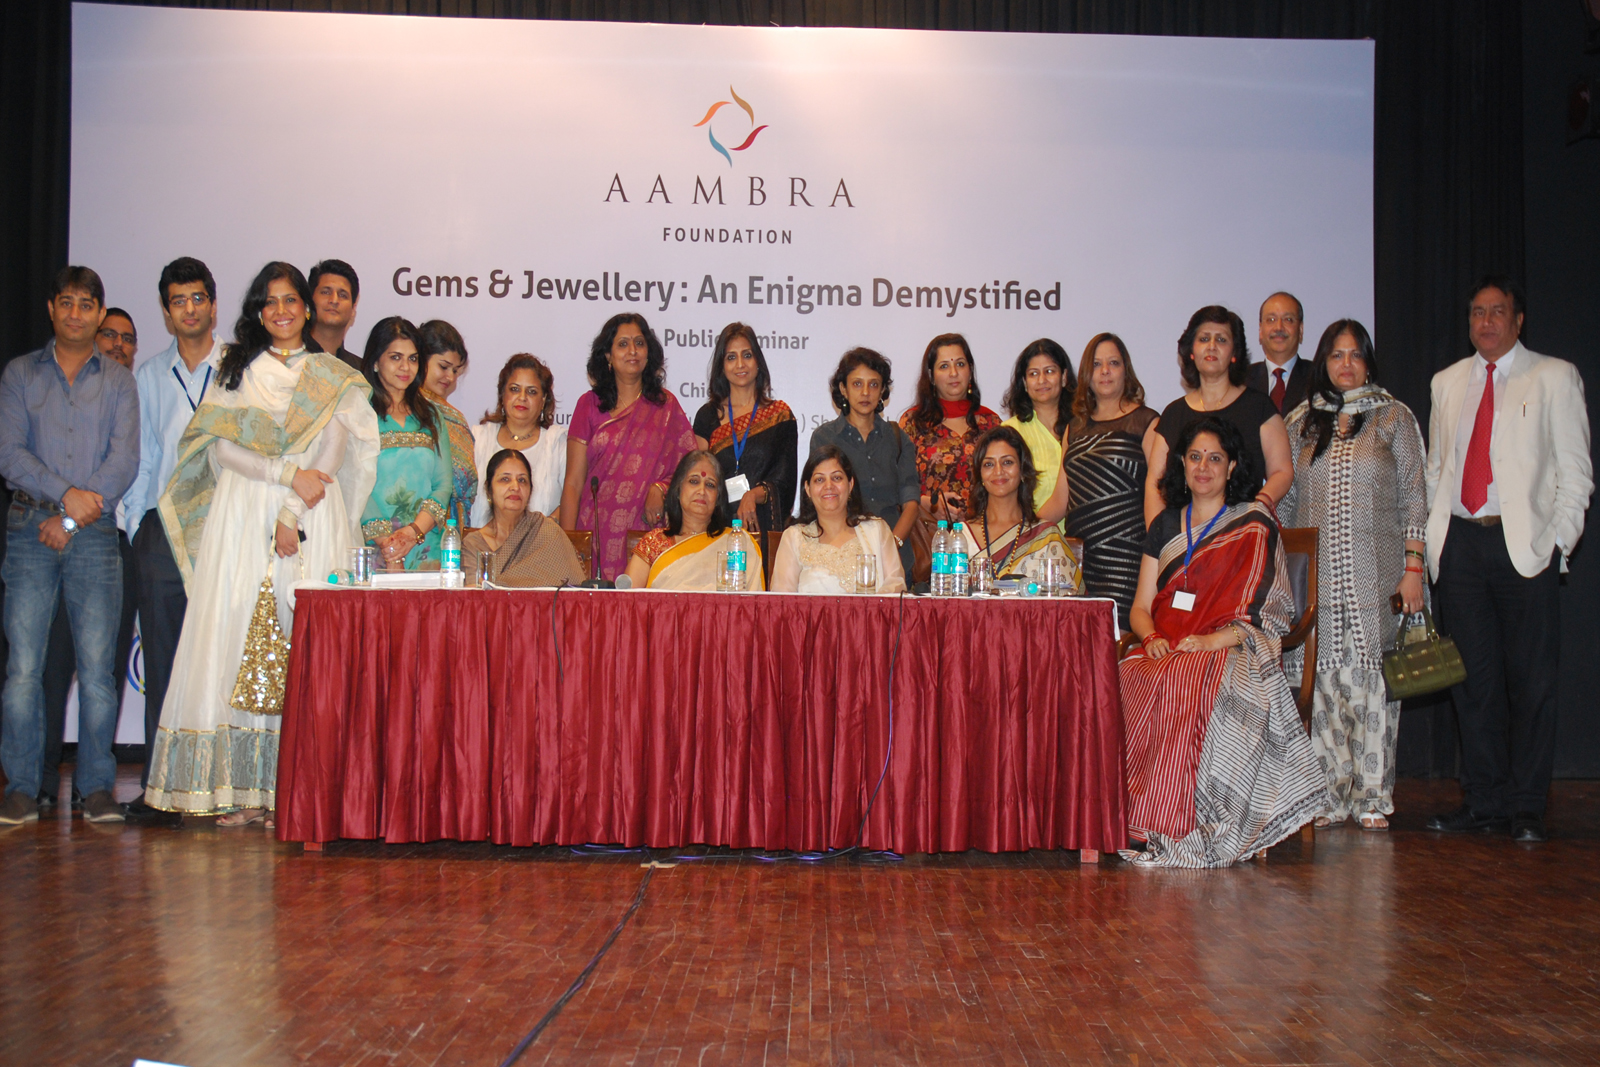 She Speaks, Aambra Foundation, Aambrotsave